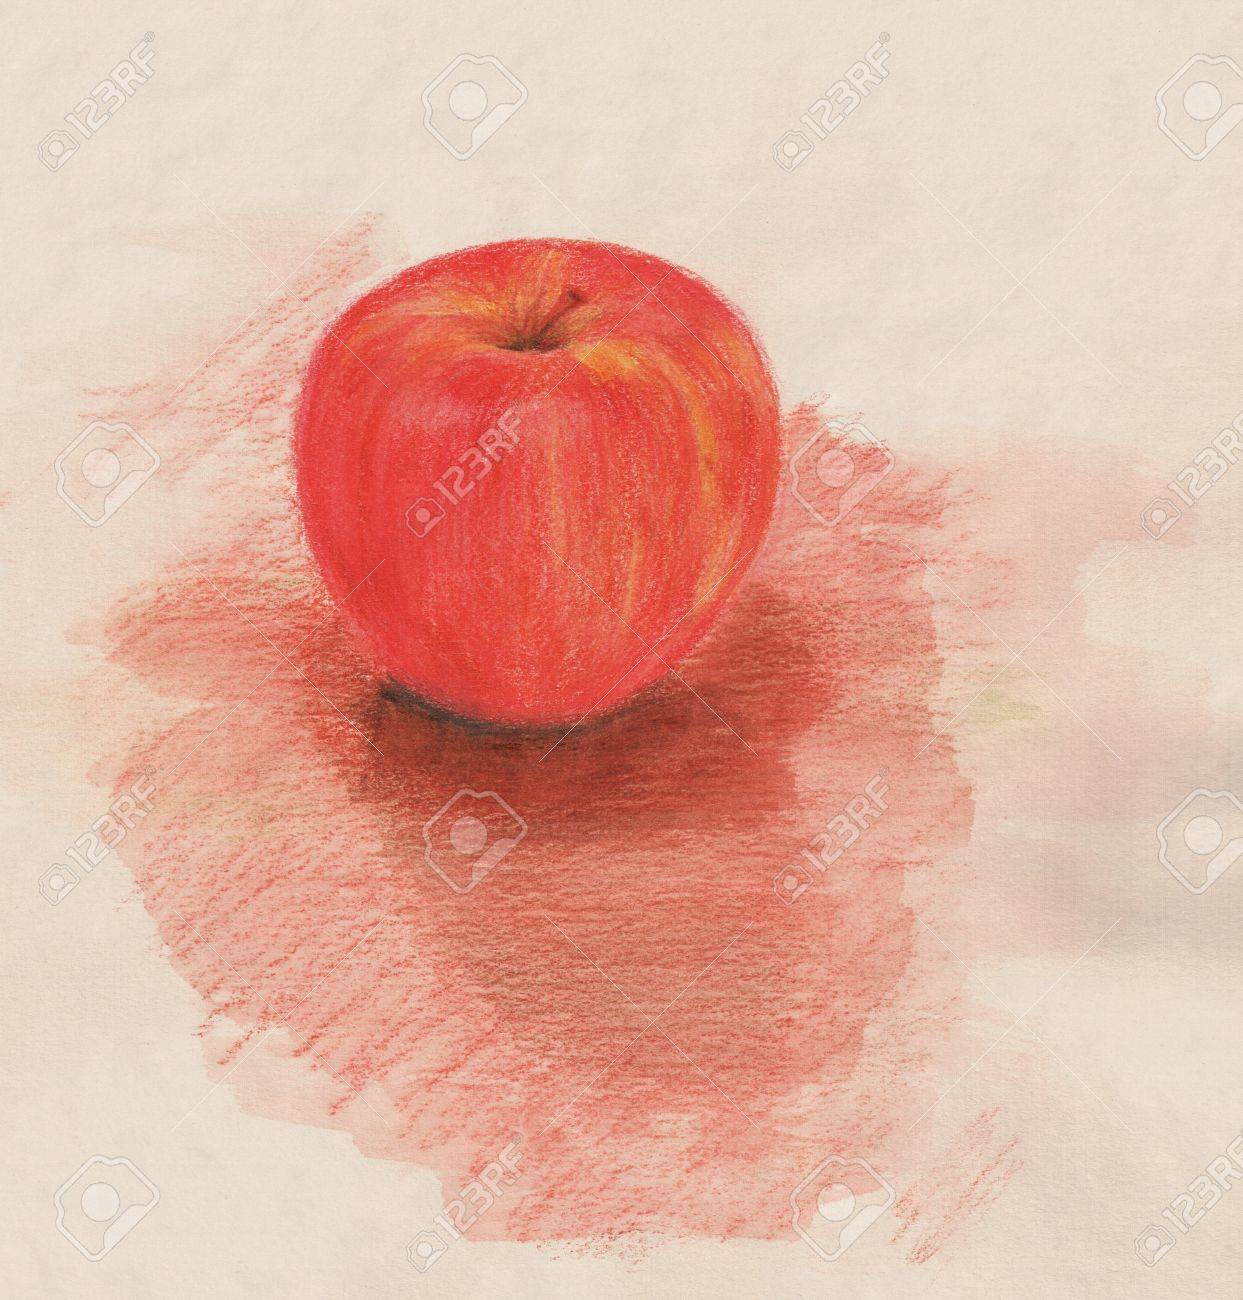 Red apple vintage style watercolor pencil drawing stock photo 12680777